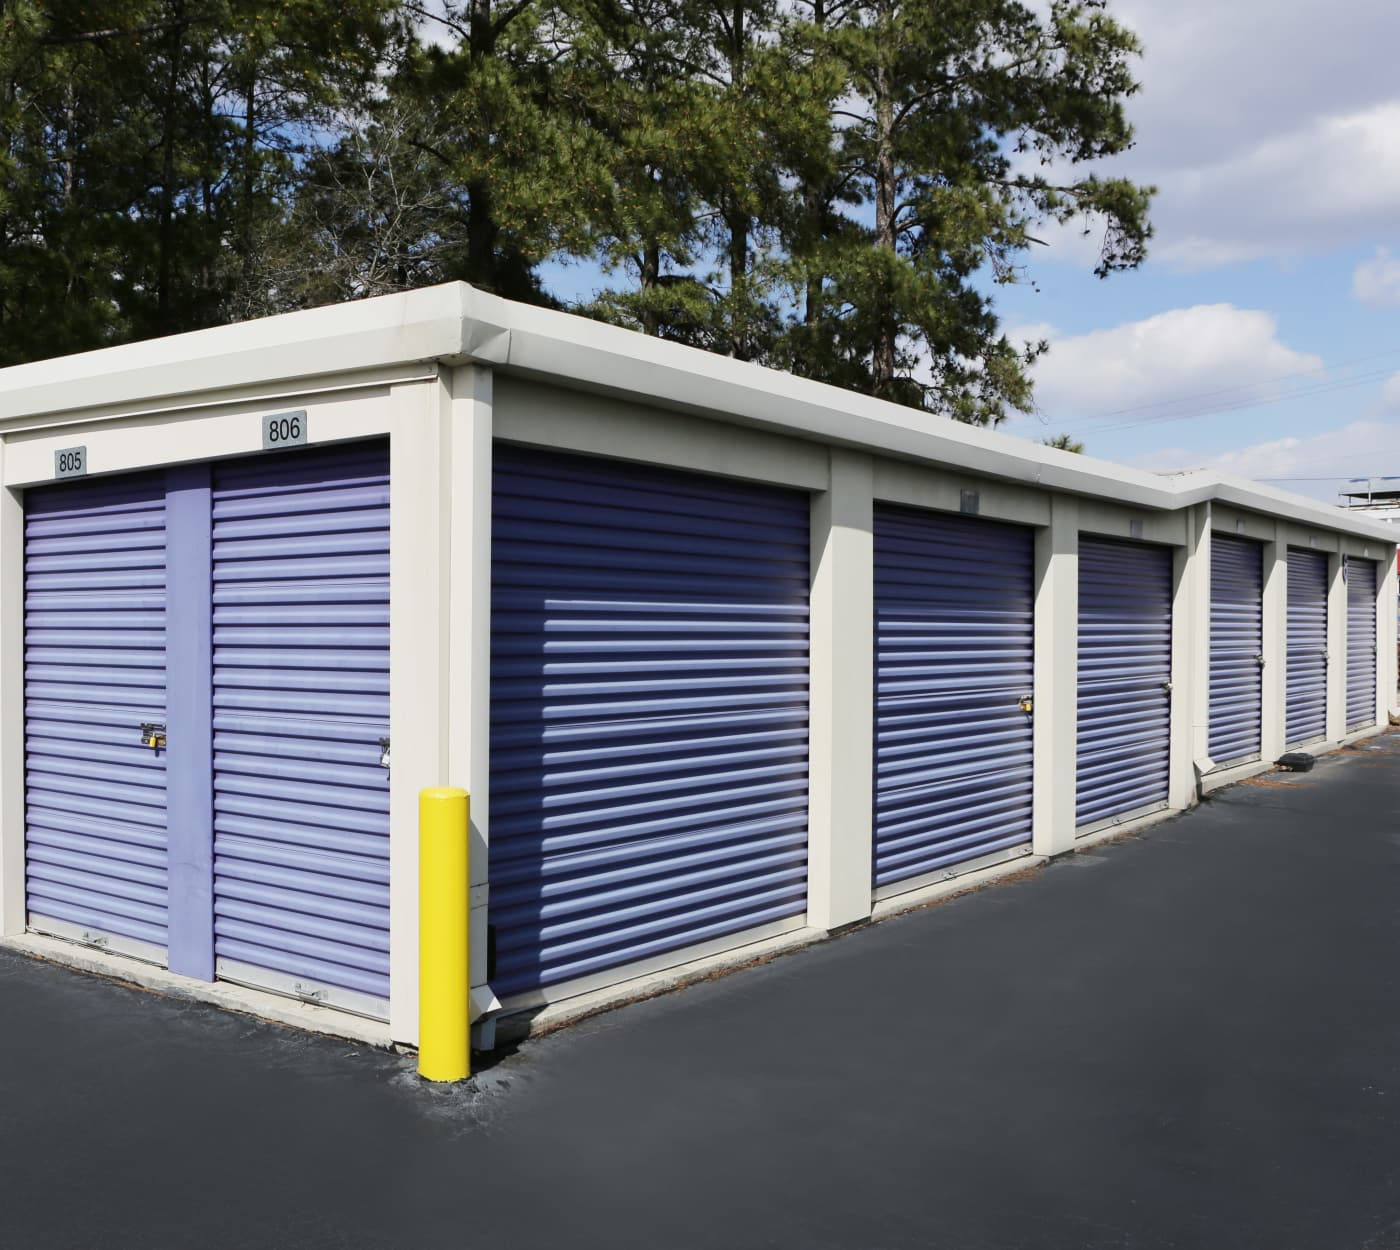 Ground-floor units at StoreSmart Self-Storage in Fayetteville, North Carolina